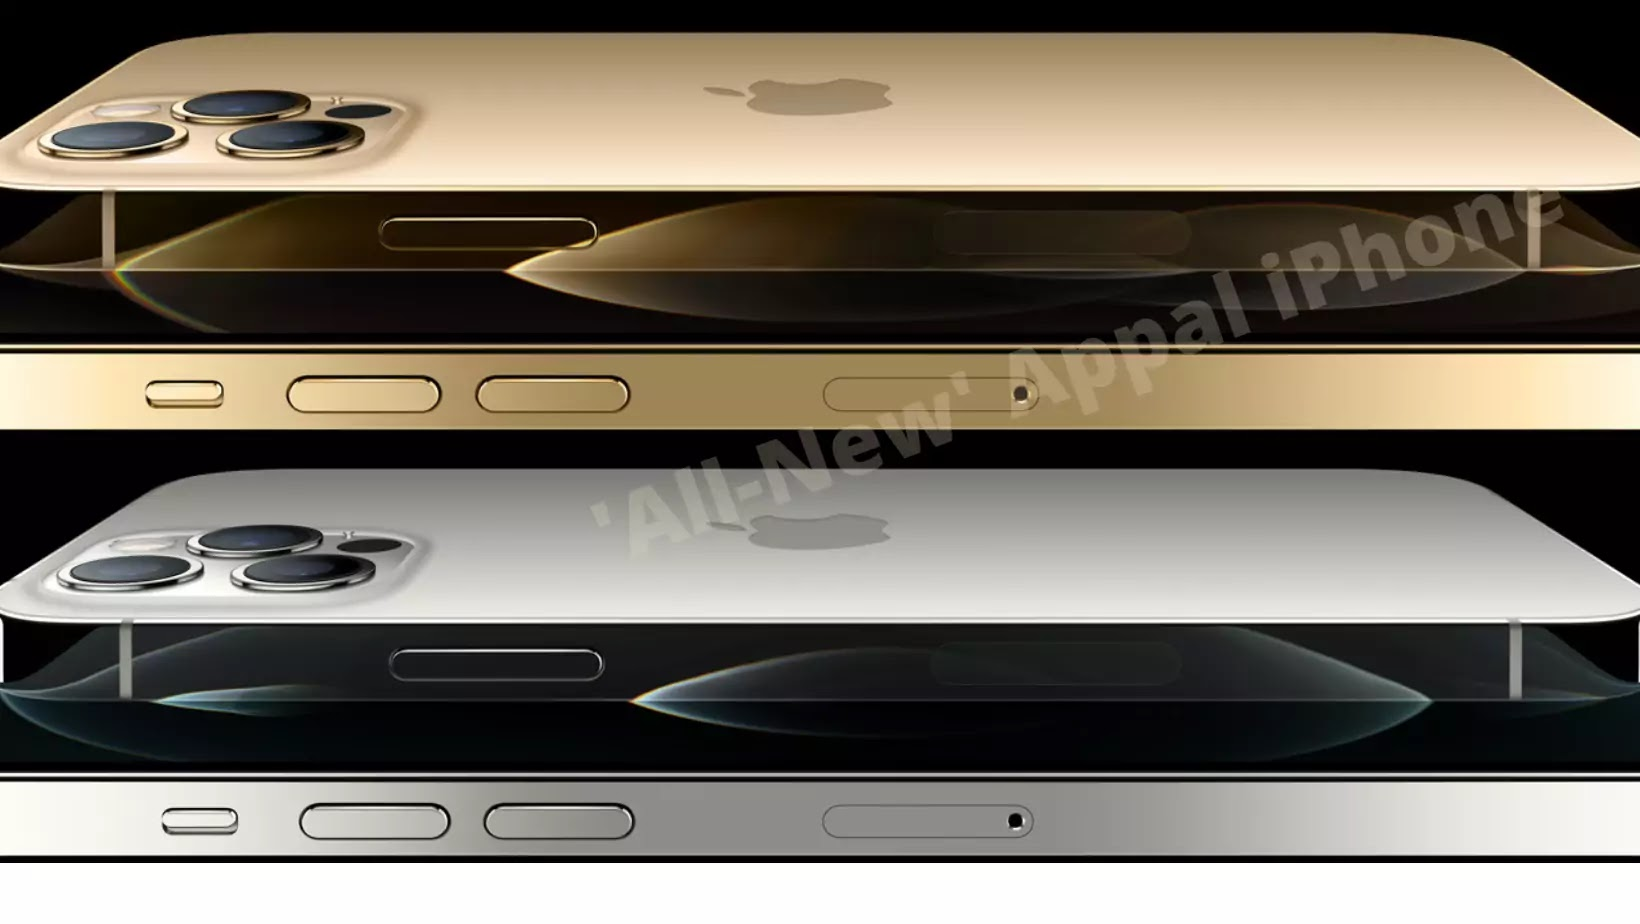 2021 iPhone Shock revealed as seven 'All-New' Appal iPhone